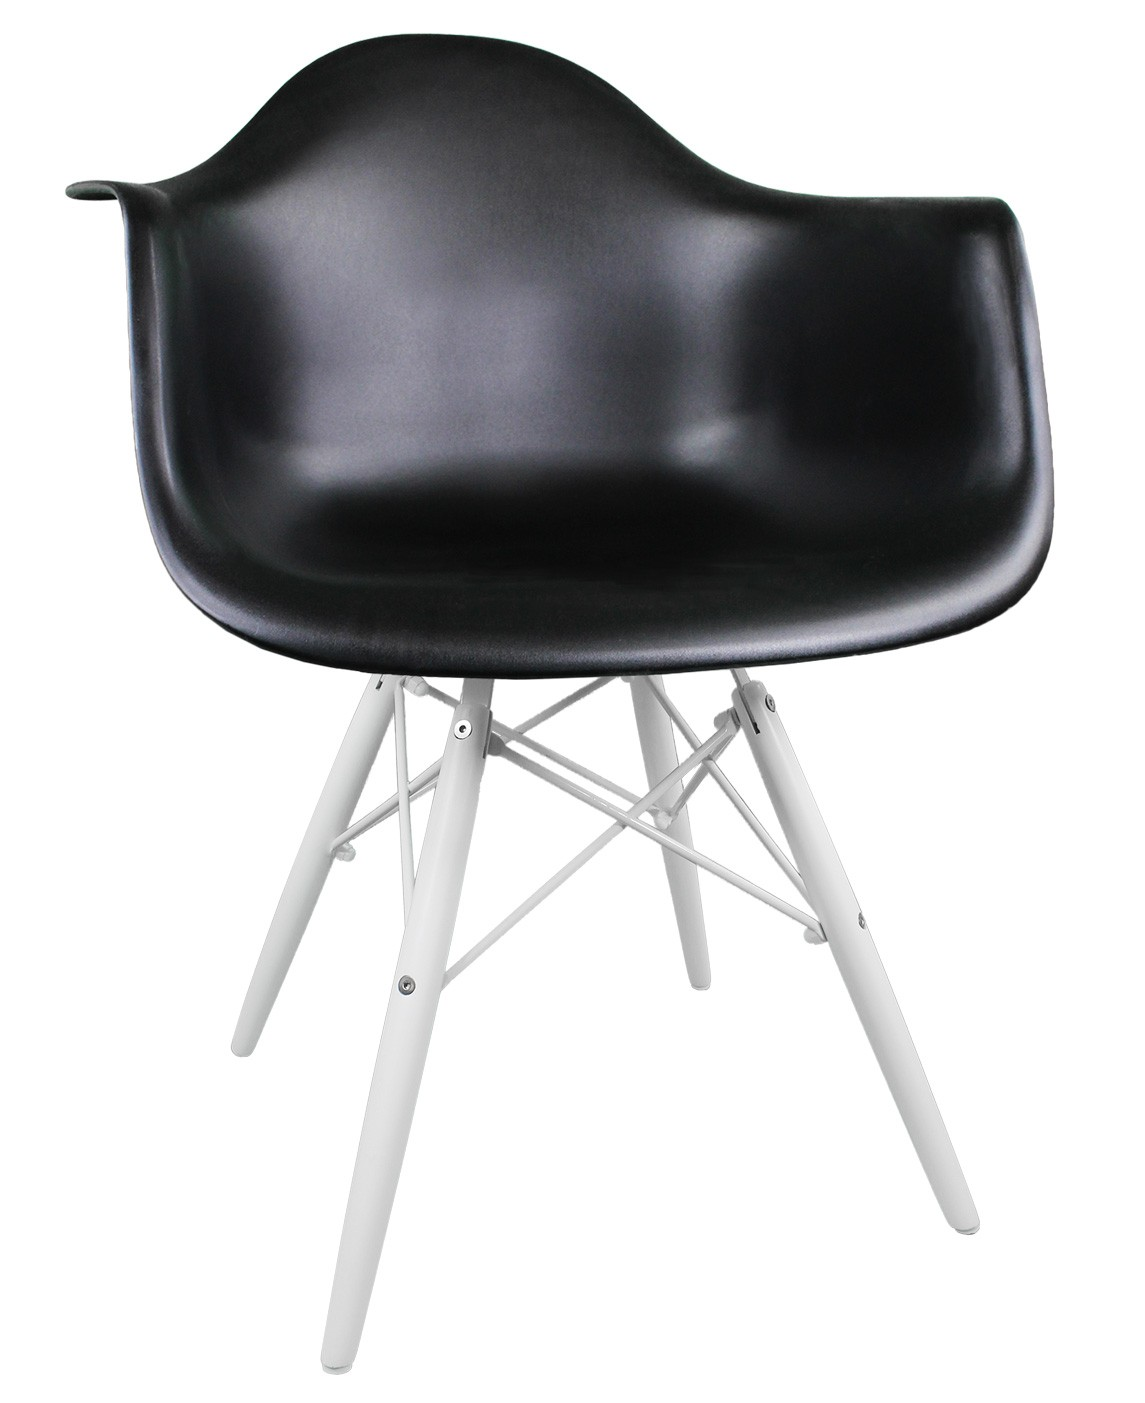 Eames Style DAW Molded Black Plastic Accent Arm Chair With